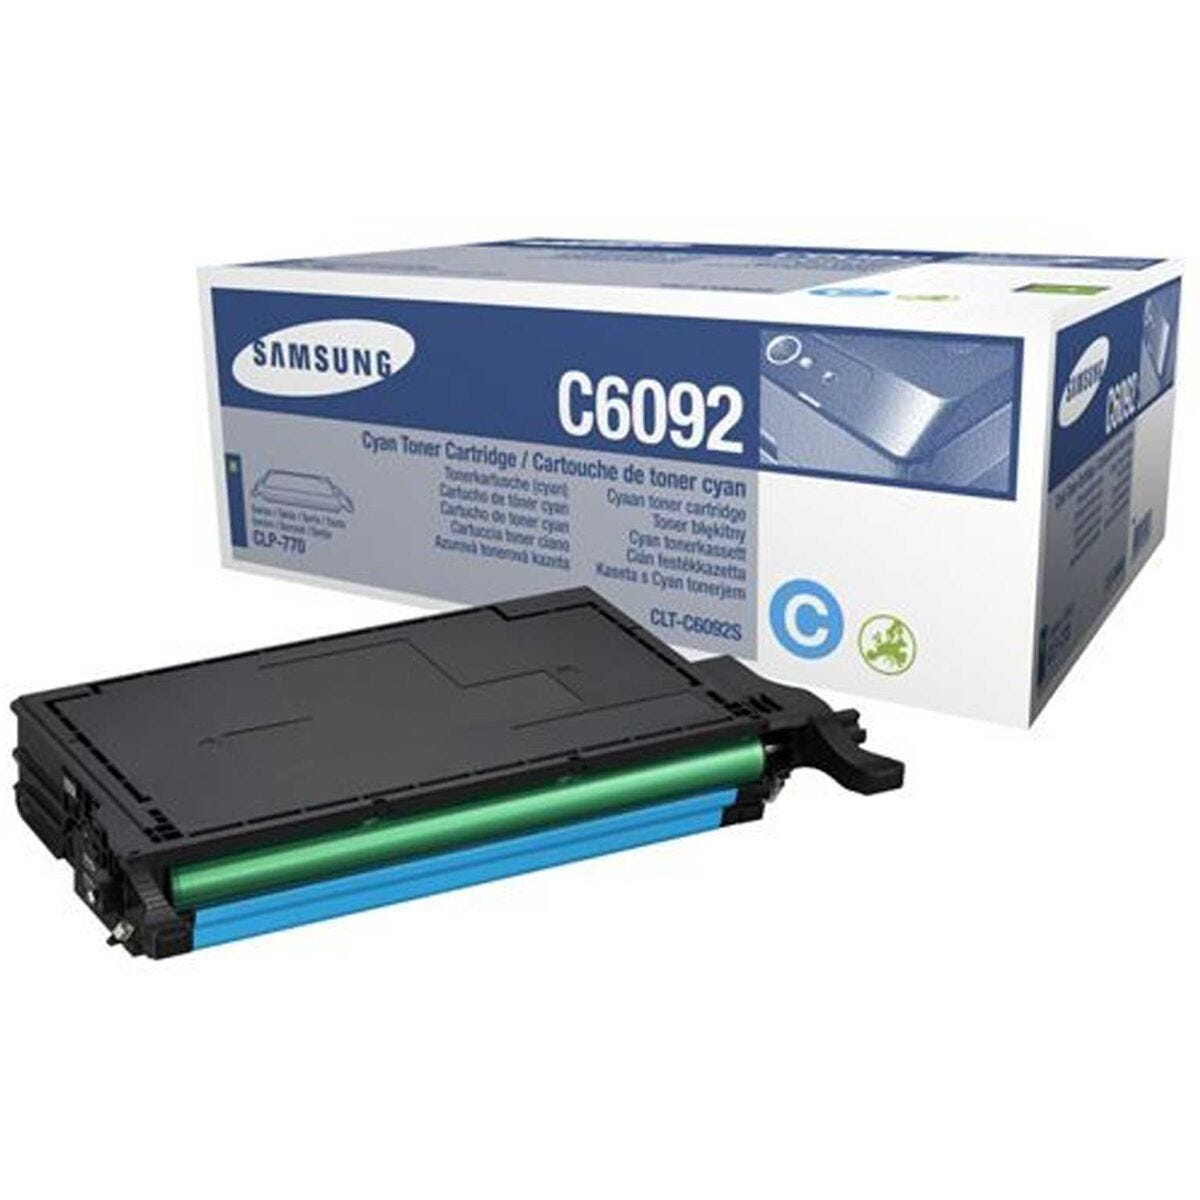 Samsung CLT-C6092S Printer Toner Cartridge